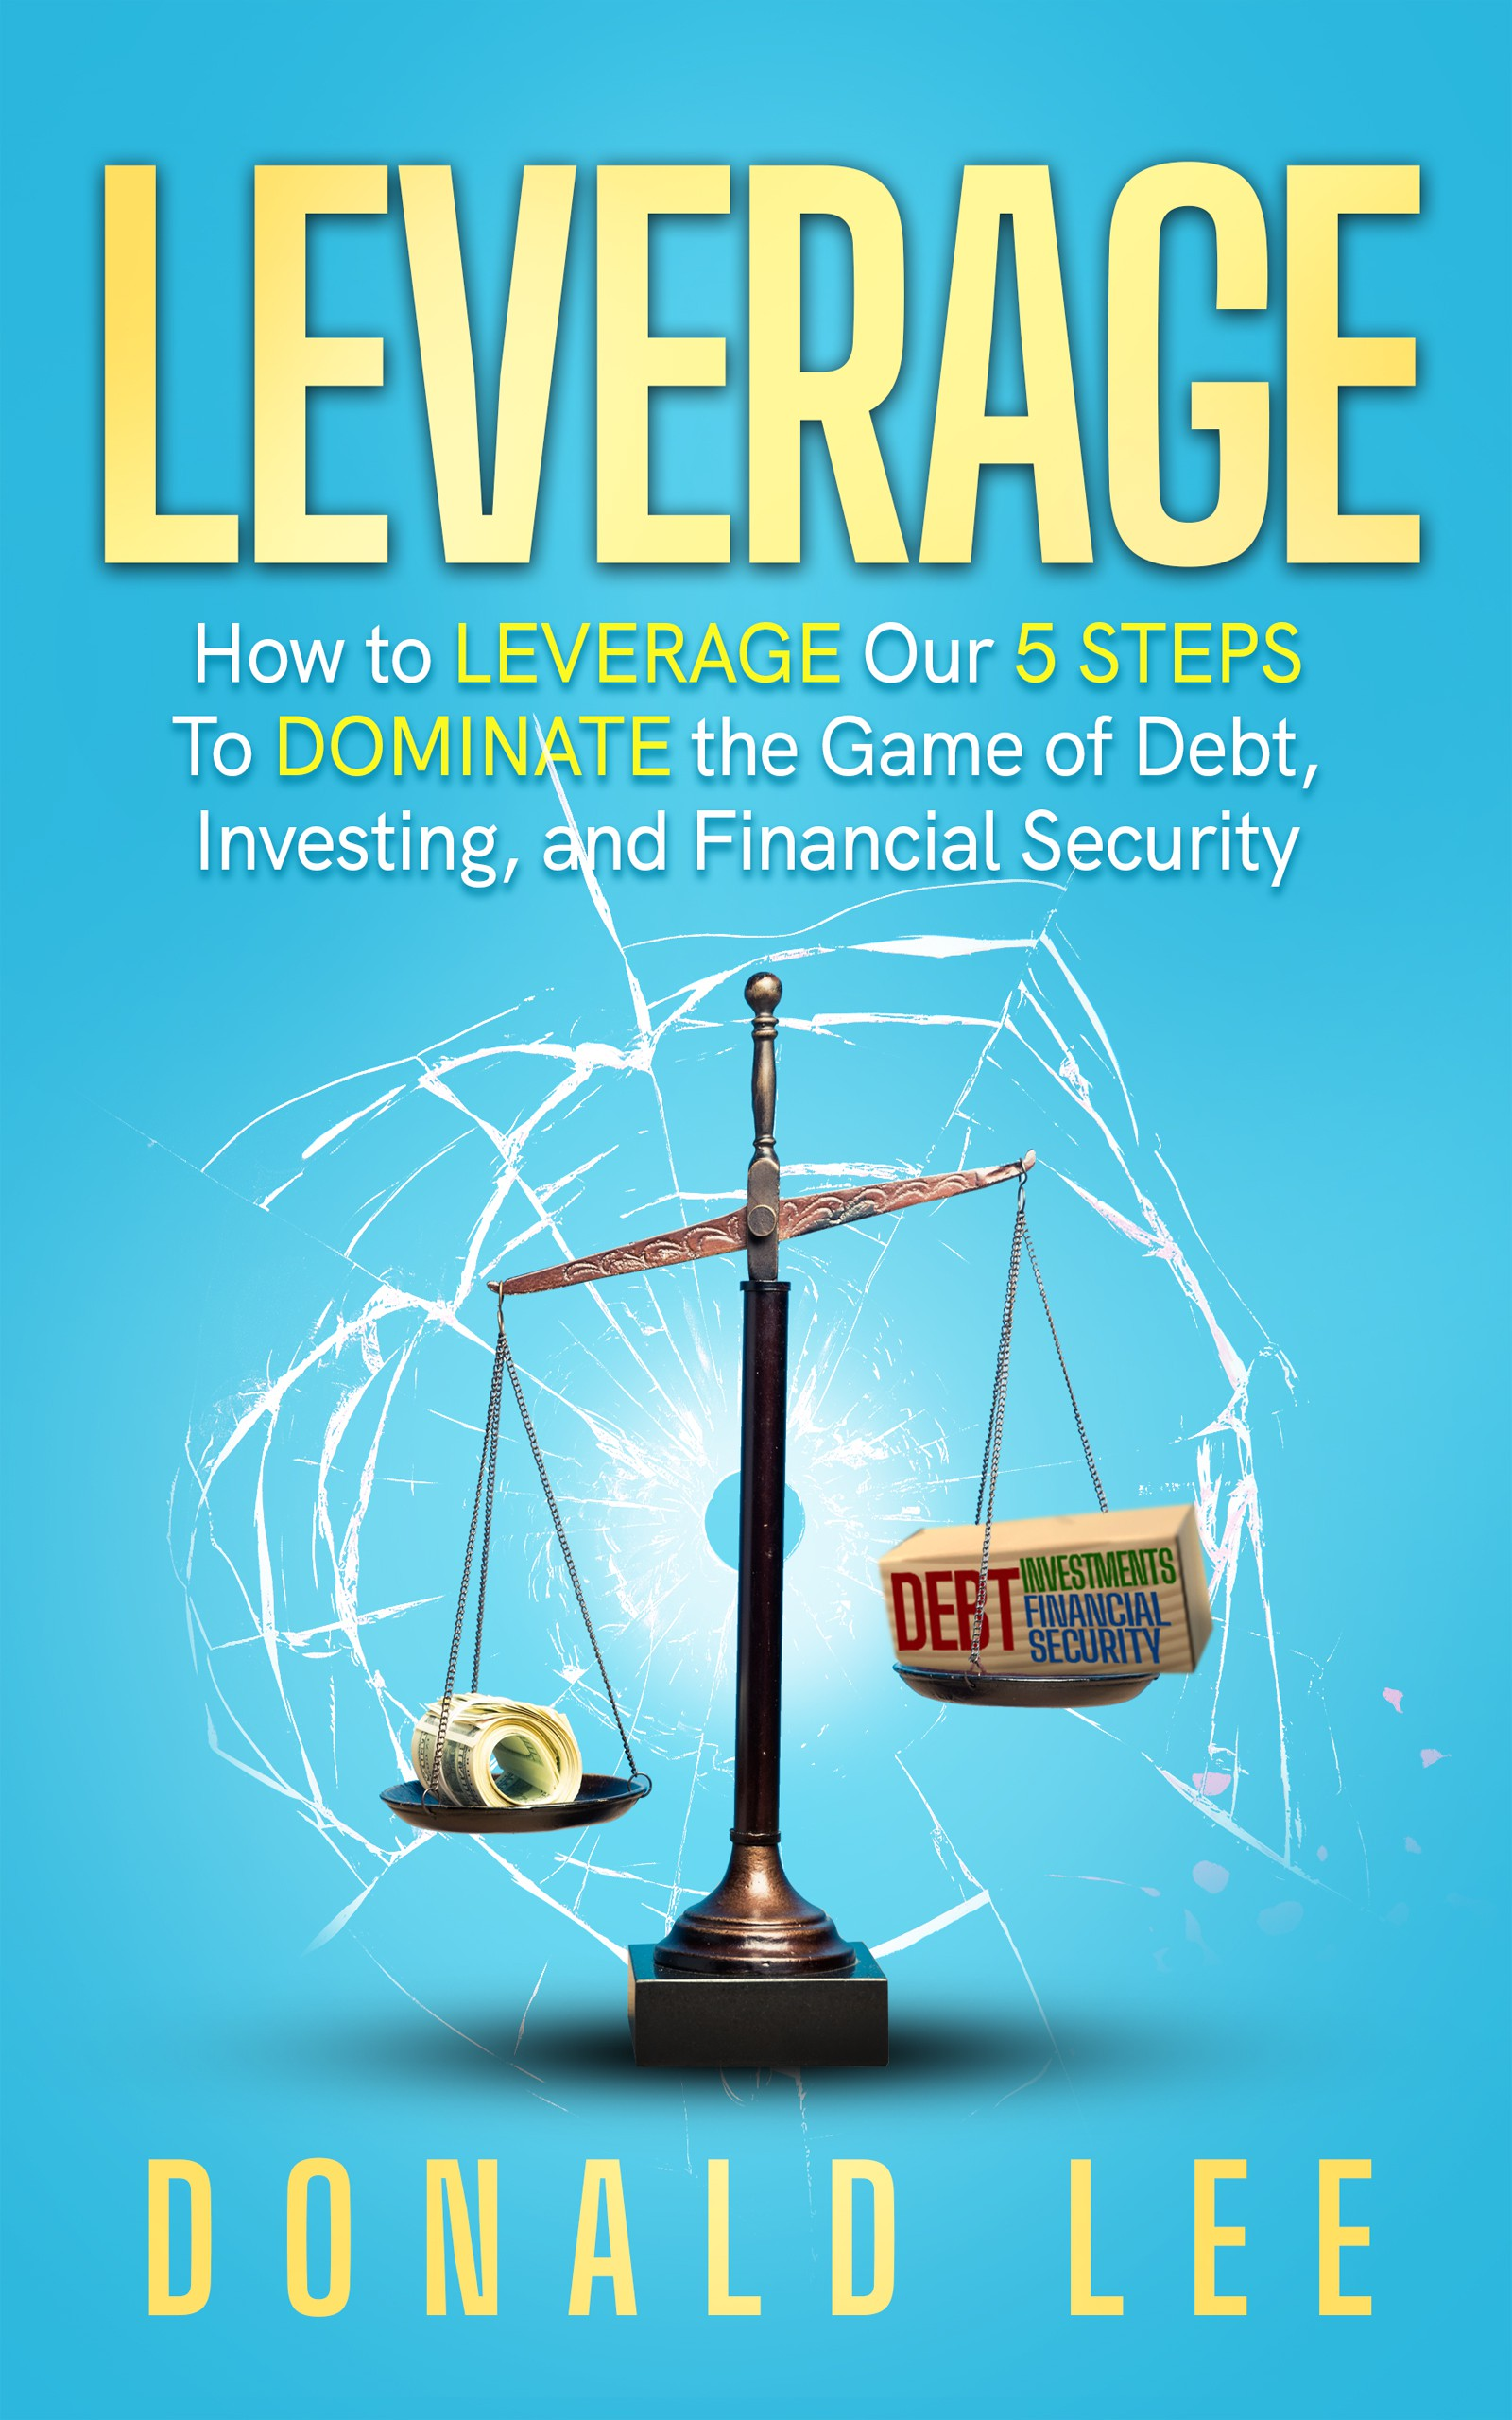 We need an EYE-CATCHING, STOP IN YOUR TRACKS, book cover for our Personal Finance Lead Magnet